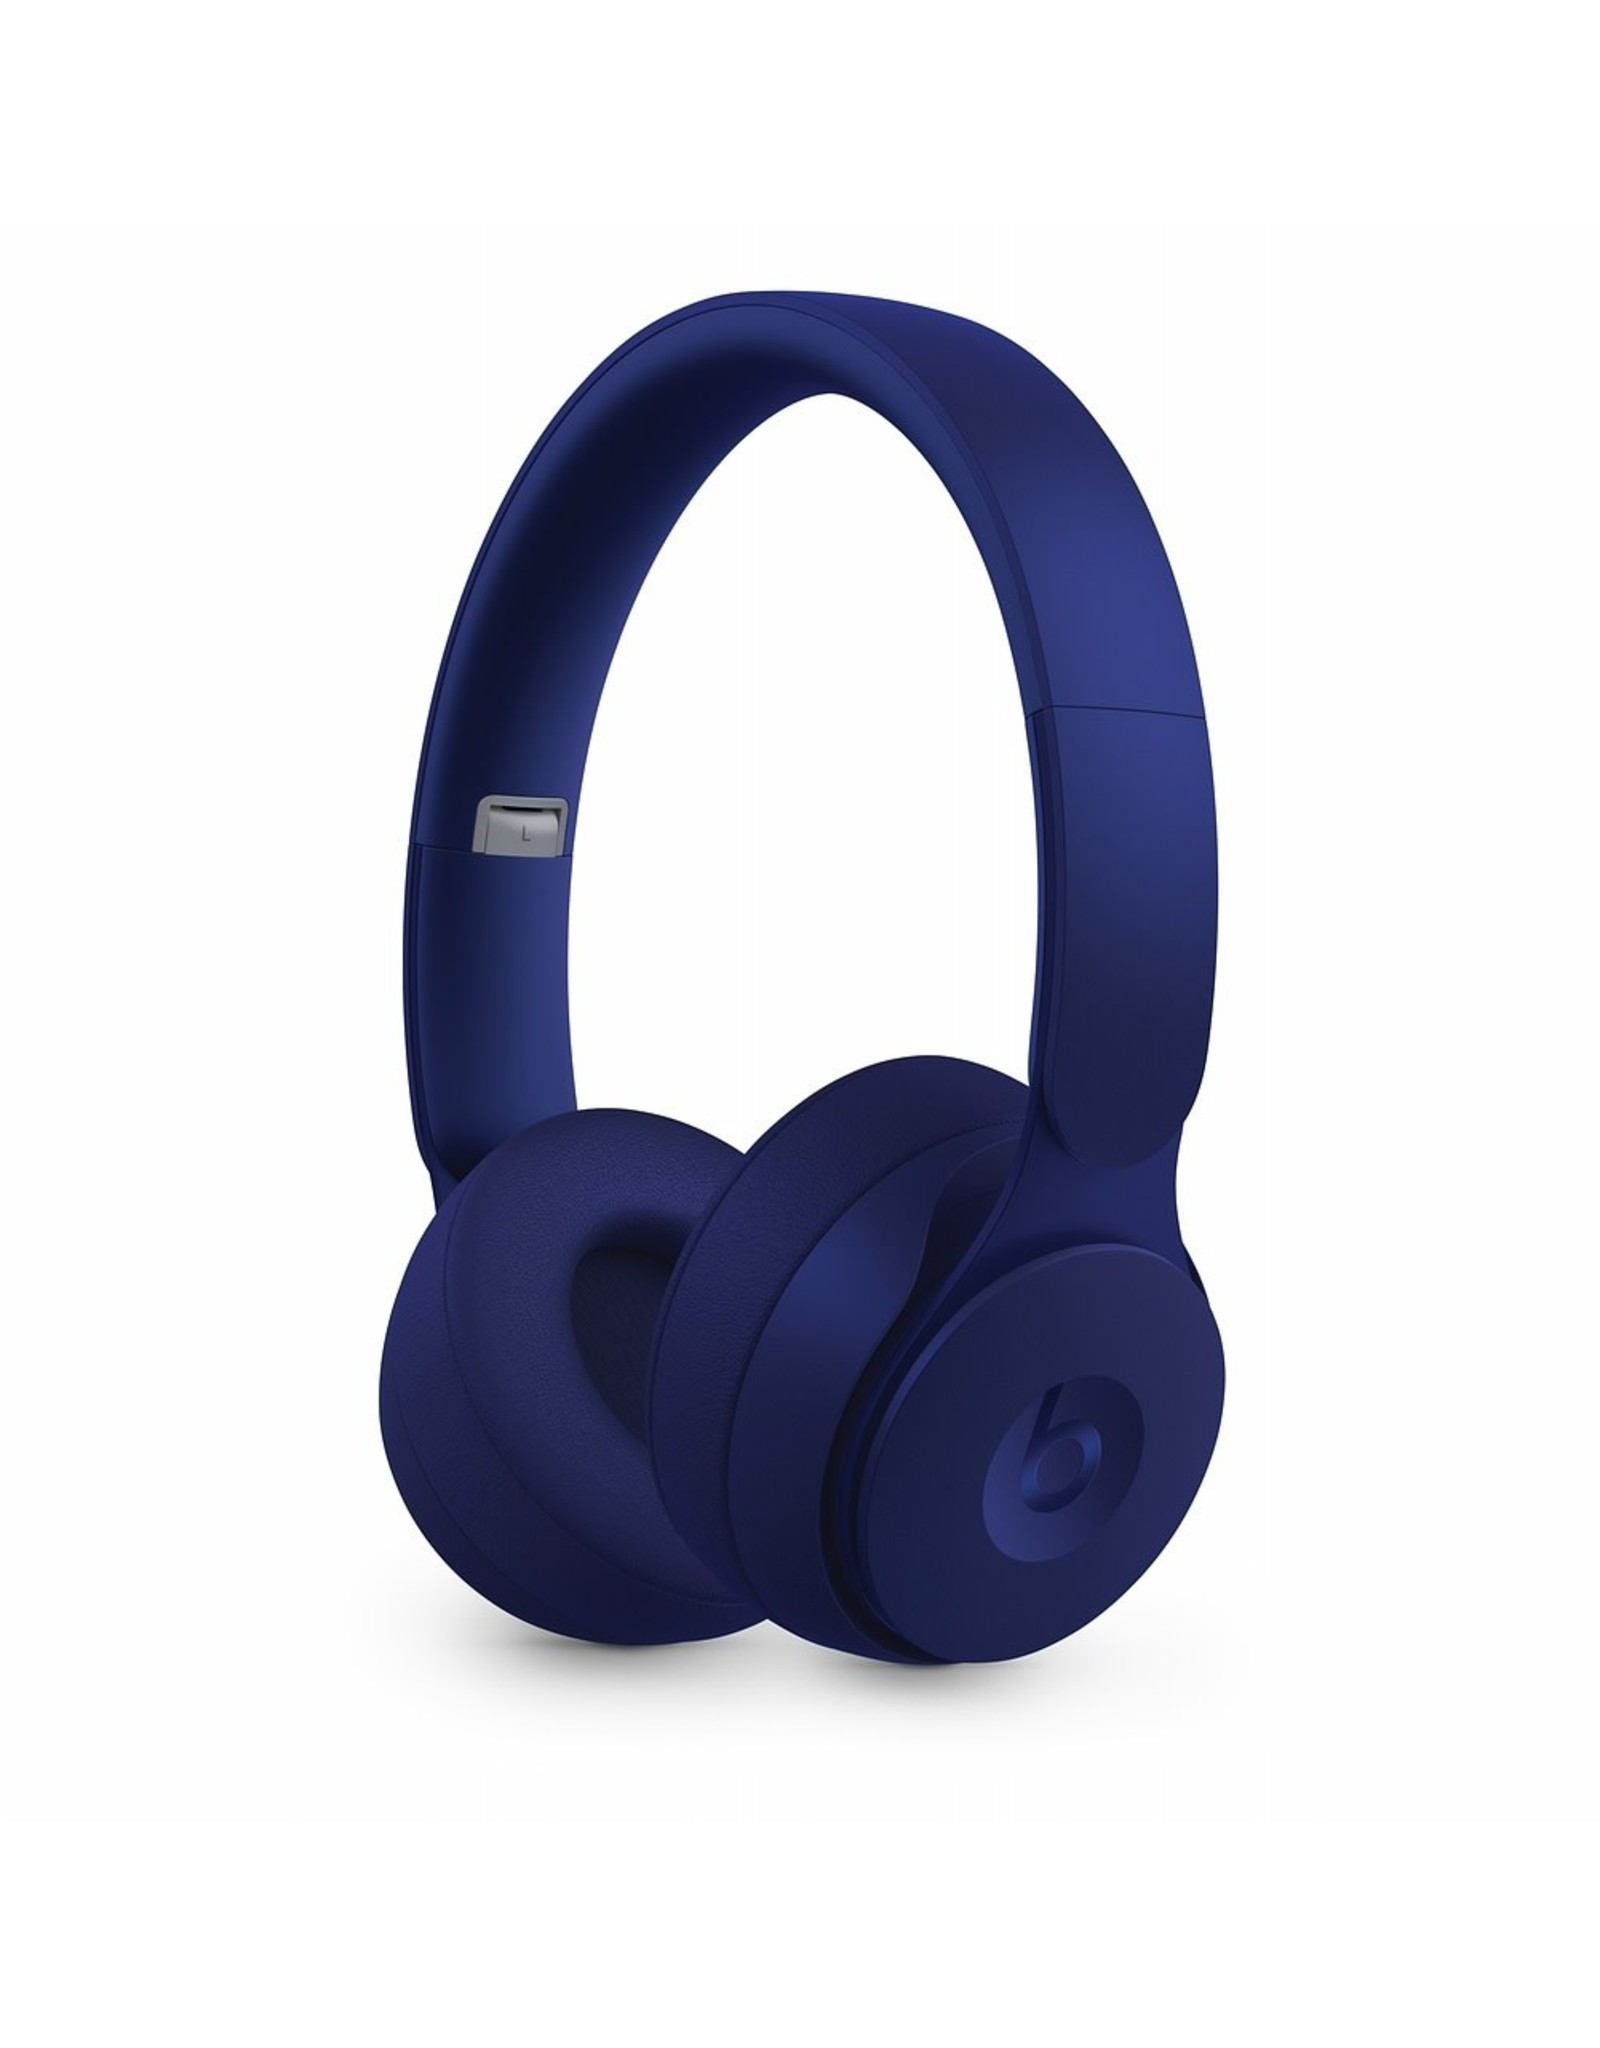 Beats Beats Solo Pro Wireless On-Ear Noise Cancelling Headphones - More Matte Collection - Dark Blue